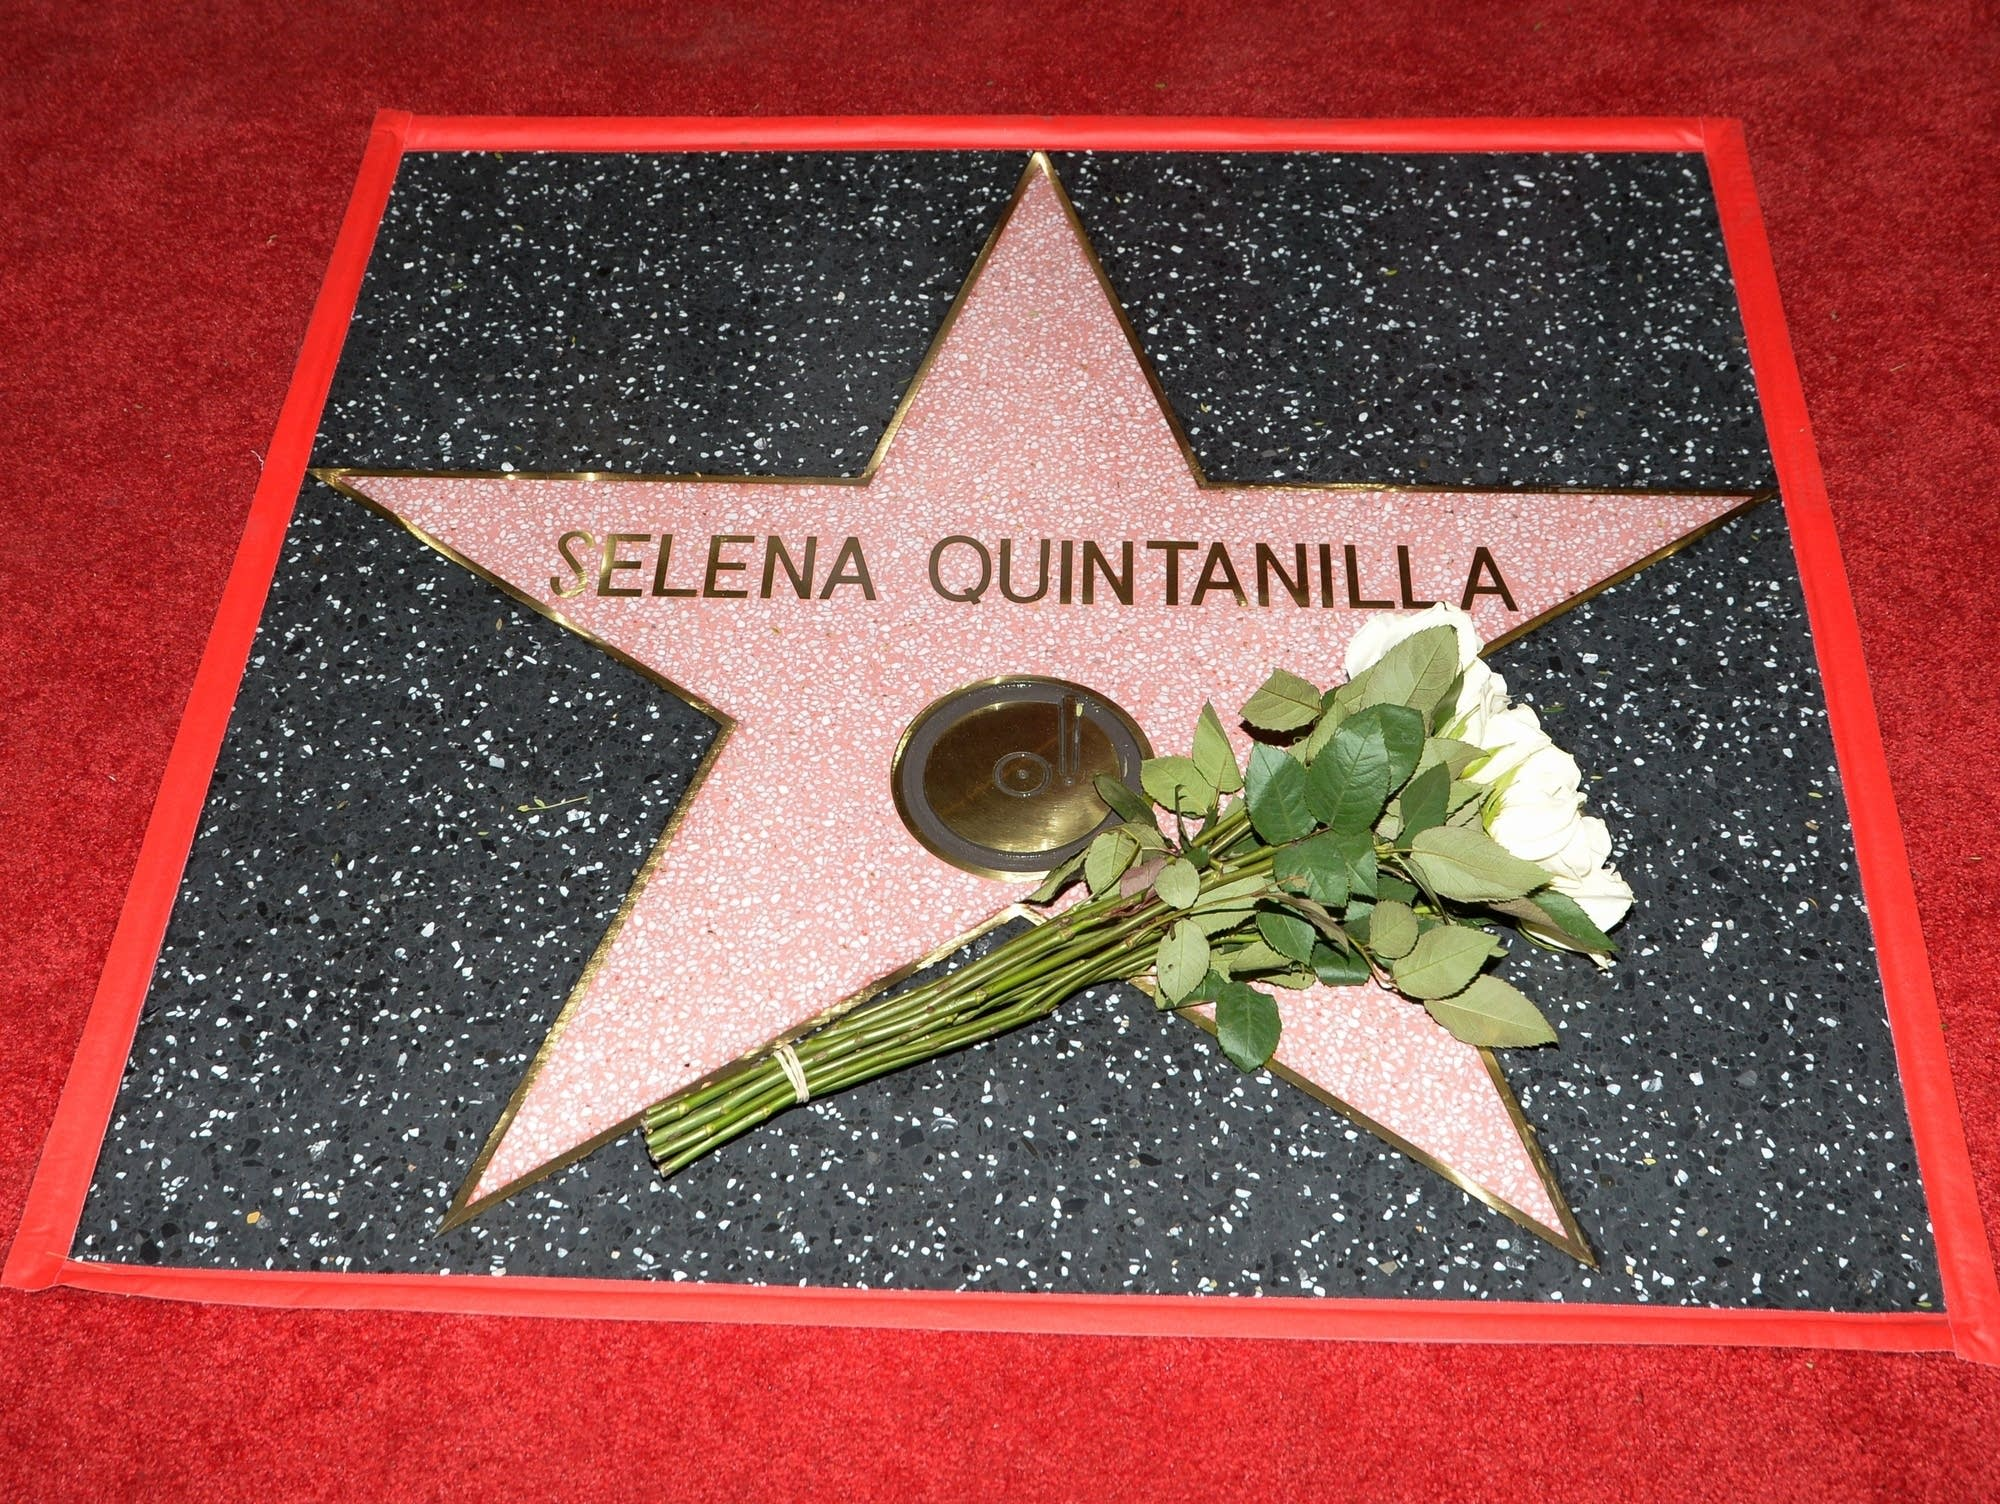 Selena's star on the Hollywood Walk of Fame.